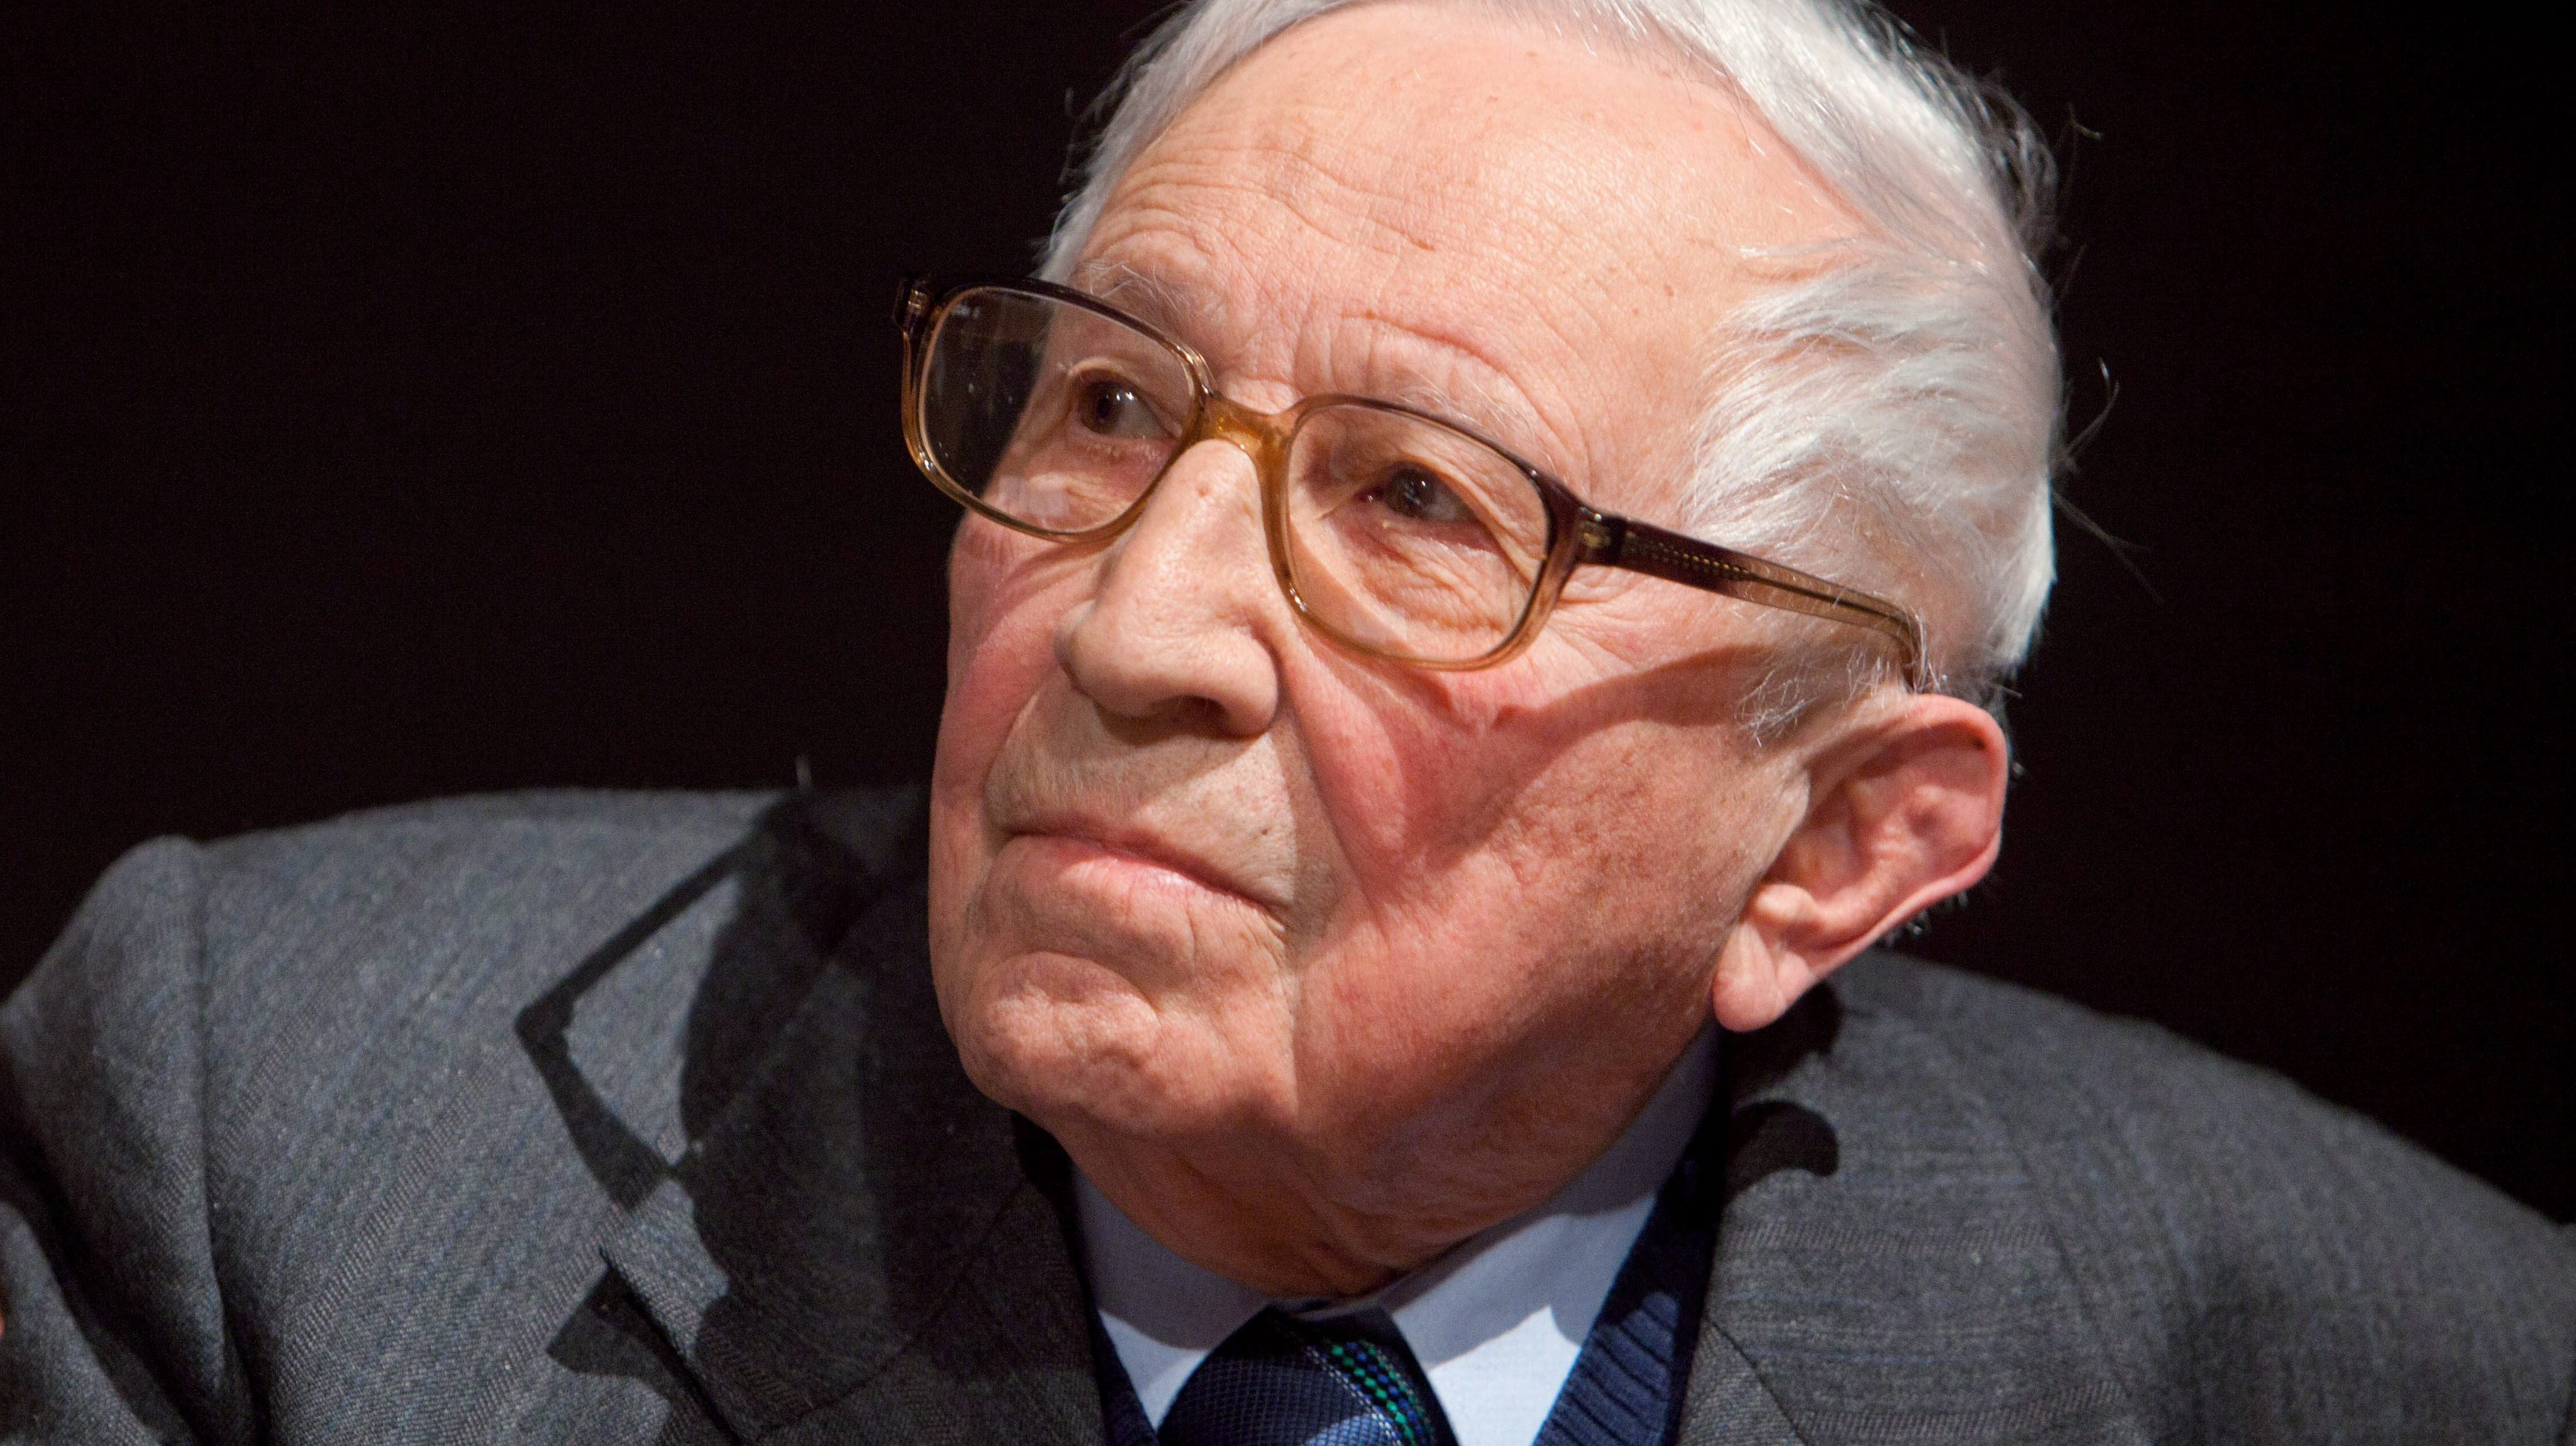 Book News: Polish Poet With Mission To 'Create Poetry After Auschwitz' Dies